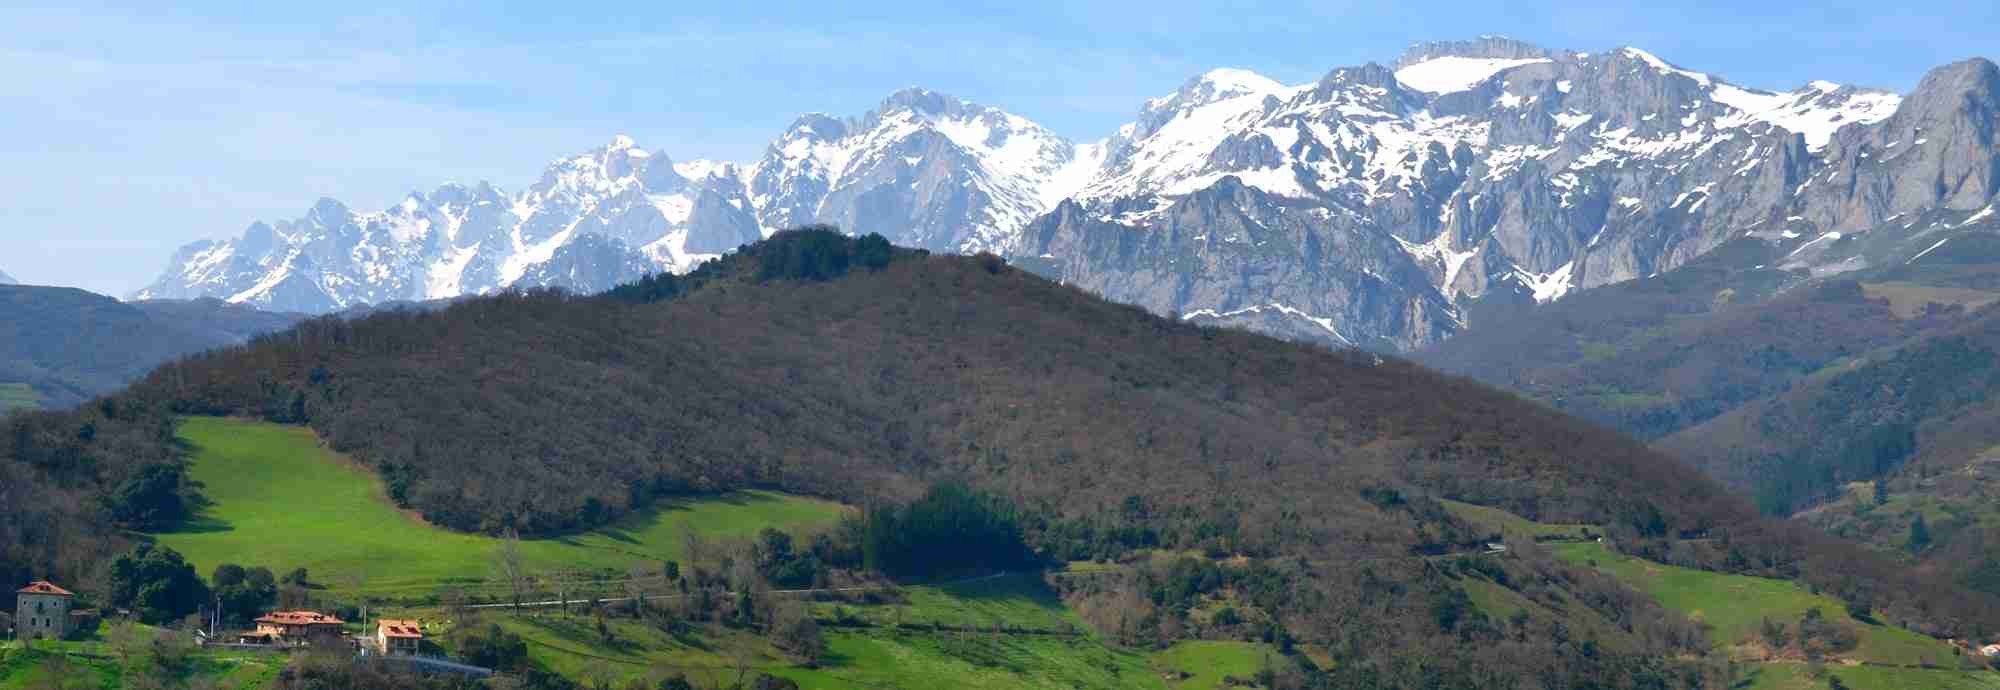 Holidays in Picos de Europa